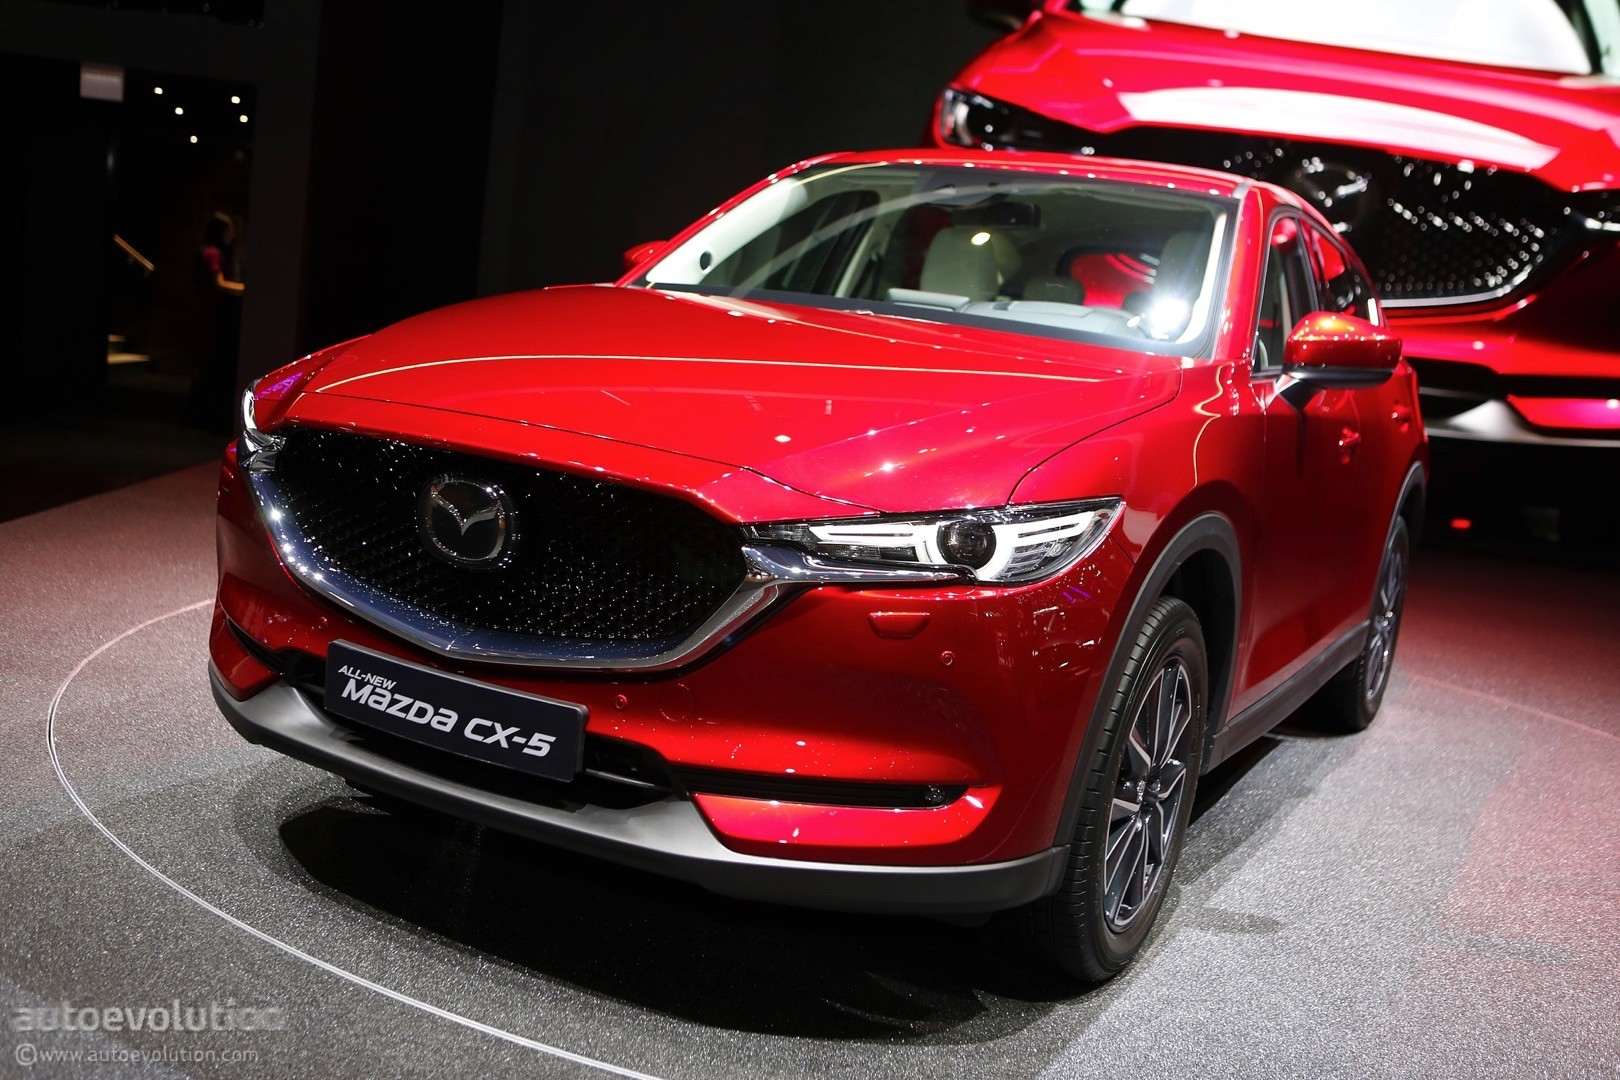 2018 Mazda Cx 8 Looks Painfully Predictable In Leaked